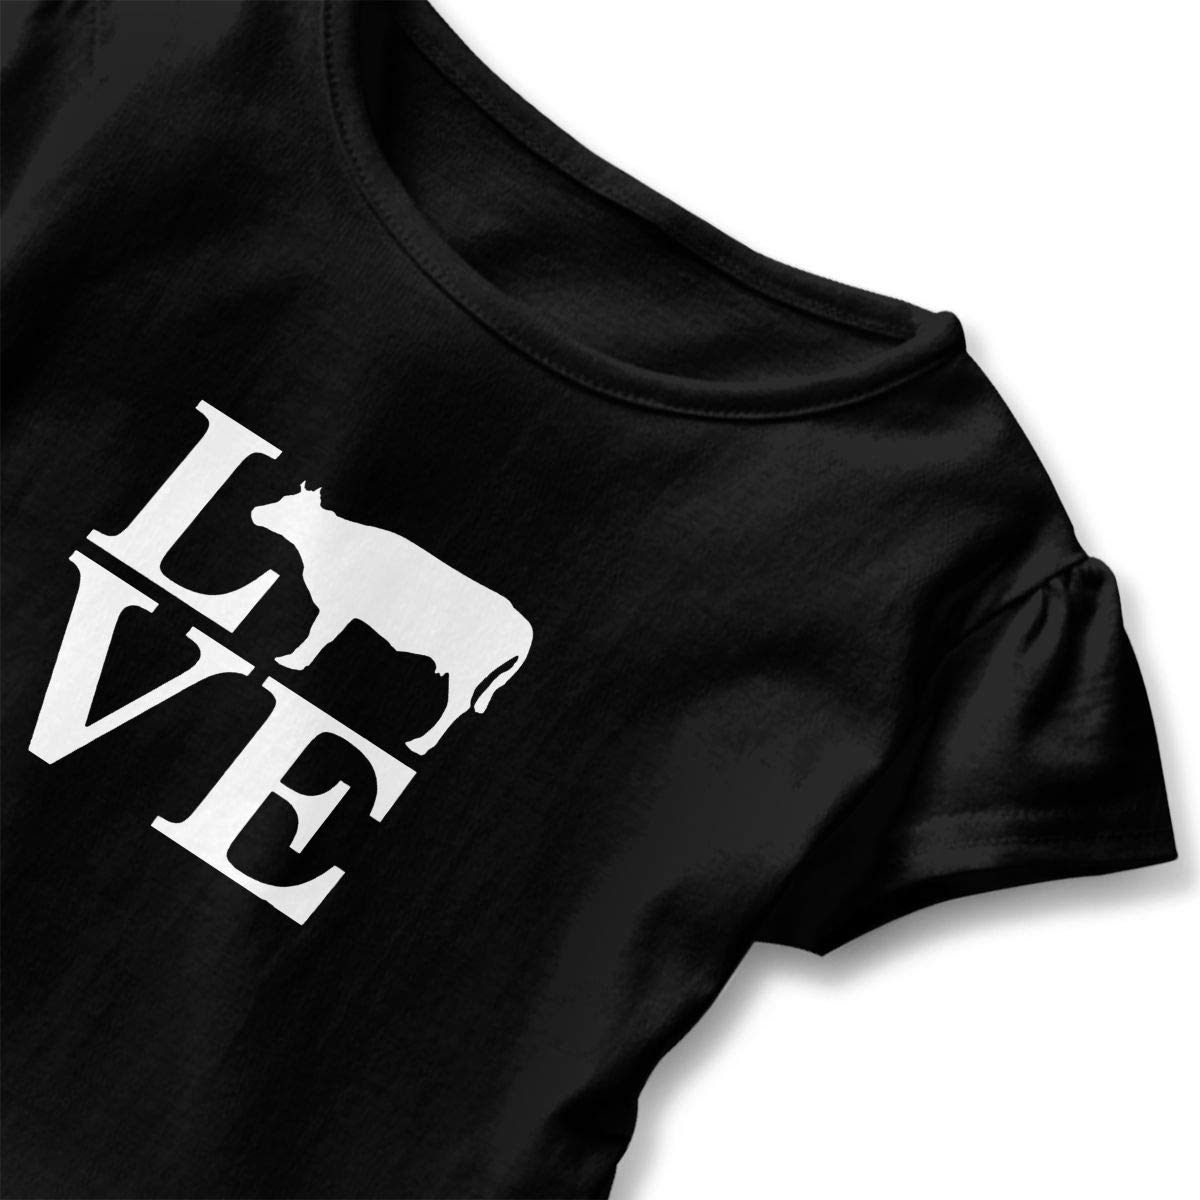 Love Cows Cute Adorable Printed Patterns Basic Ruffle Tee Shirts with Short Sleeves and O-Neck for Daily Party School Outside Playing Black